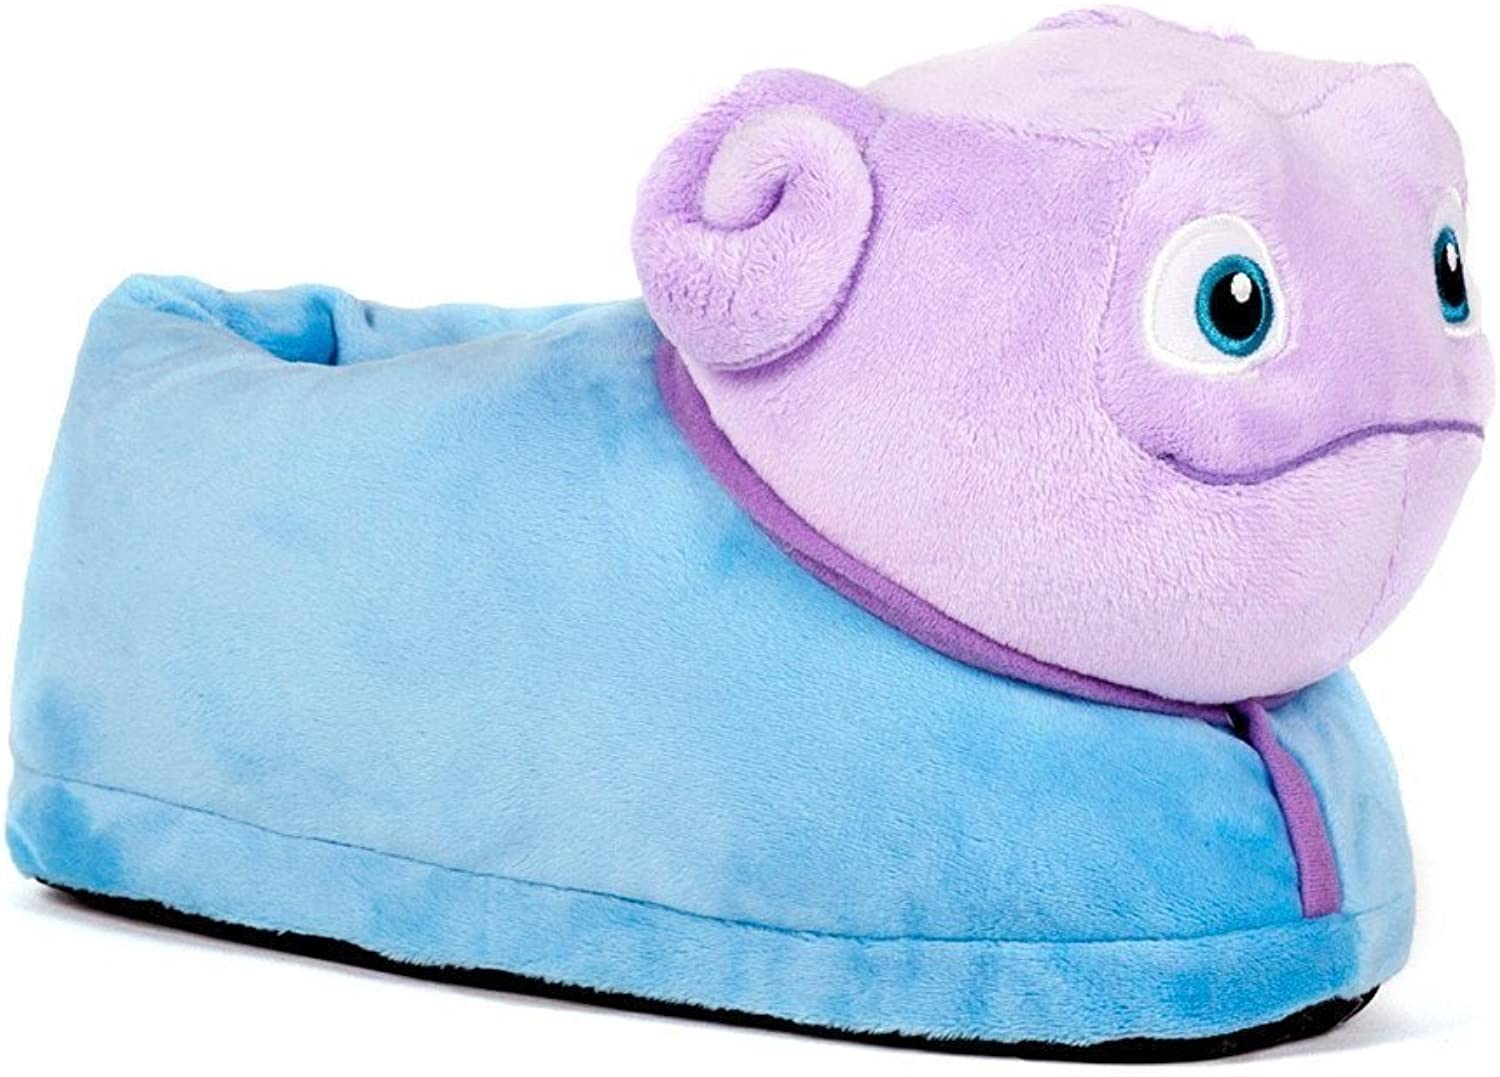 Happy Feet - DreamWorks Home - Oh Slippers - Small